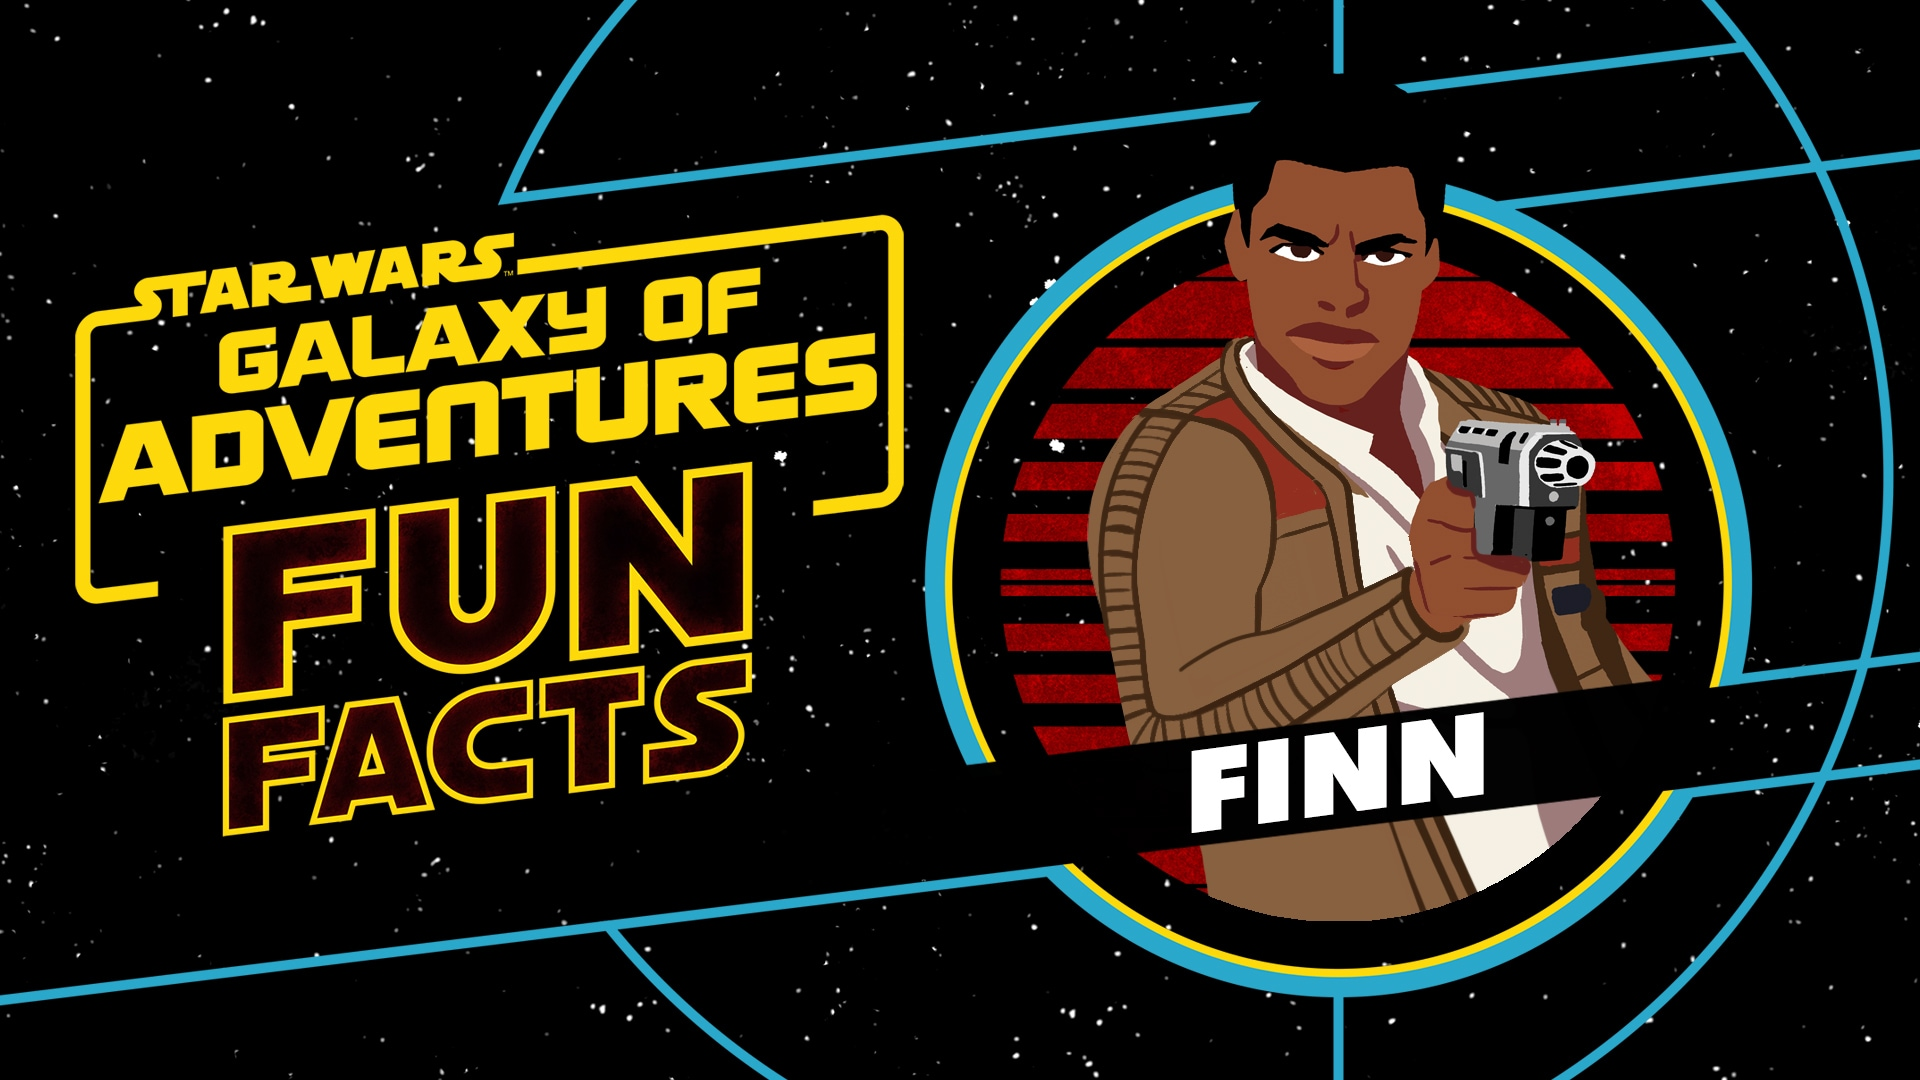 Finn | Star Wars Galaxy of Adventures Fun Facts